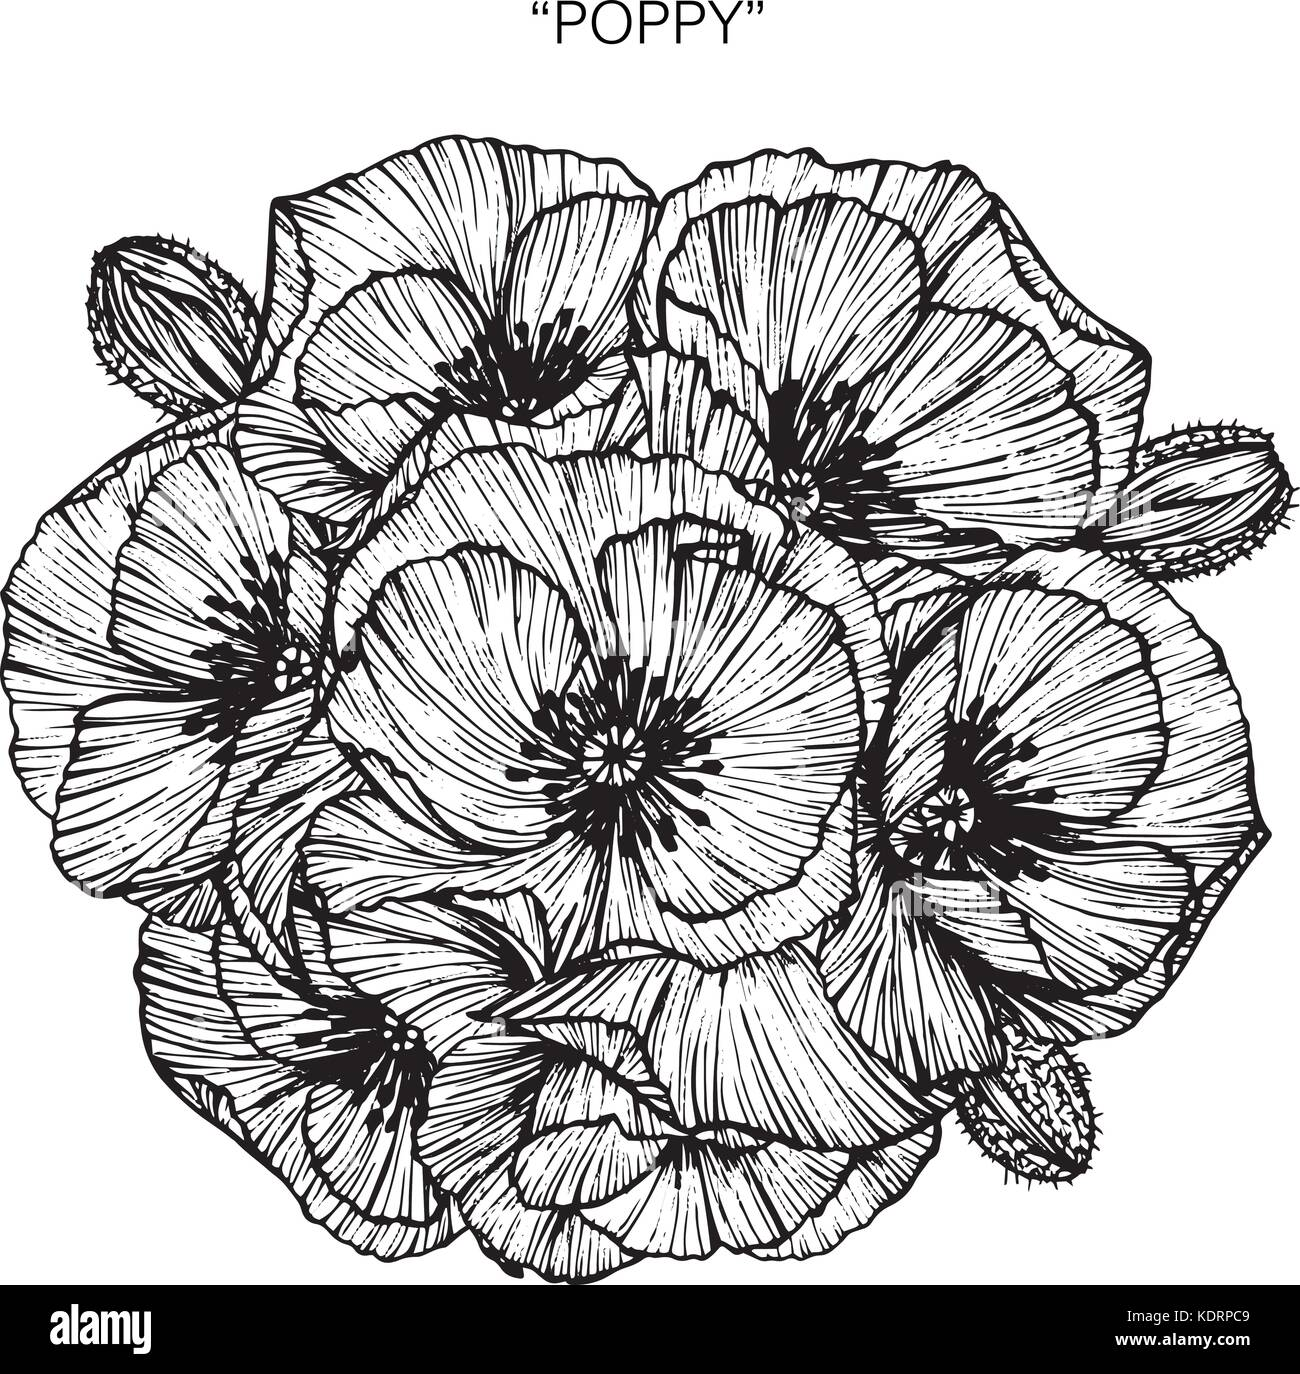 Bouquet Of Poppy Flowers Drawing Stock Vector Art Illustration